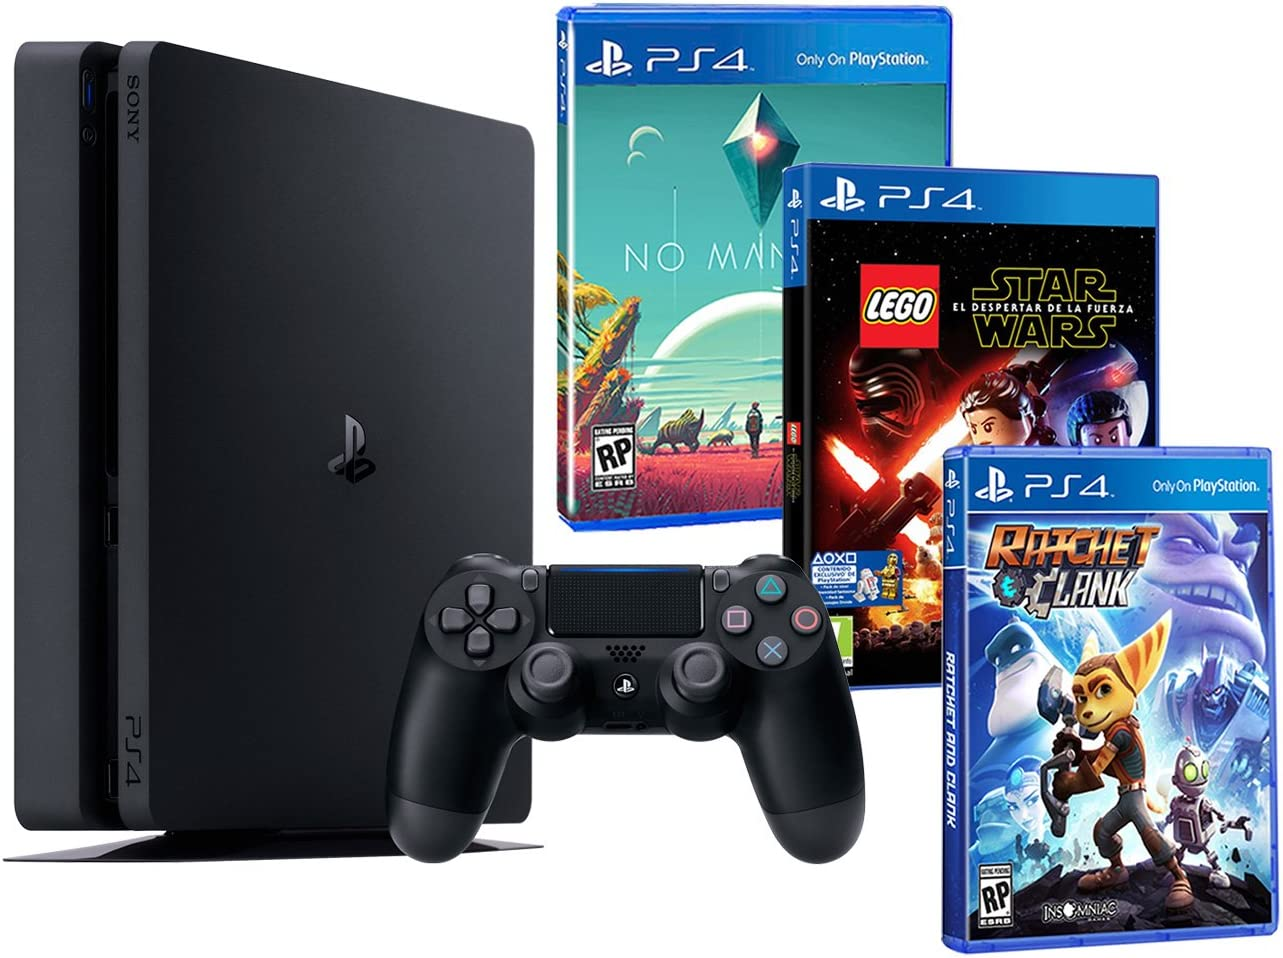 Playstation 4 Consola PS4 Slim 500Gb Pack Infantil 3 Juegos - Lego Star Wars: El Despertar de la Fuerza + No ManS Sky + Ratchet & Clank: Amazon.es: Videojuegos